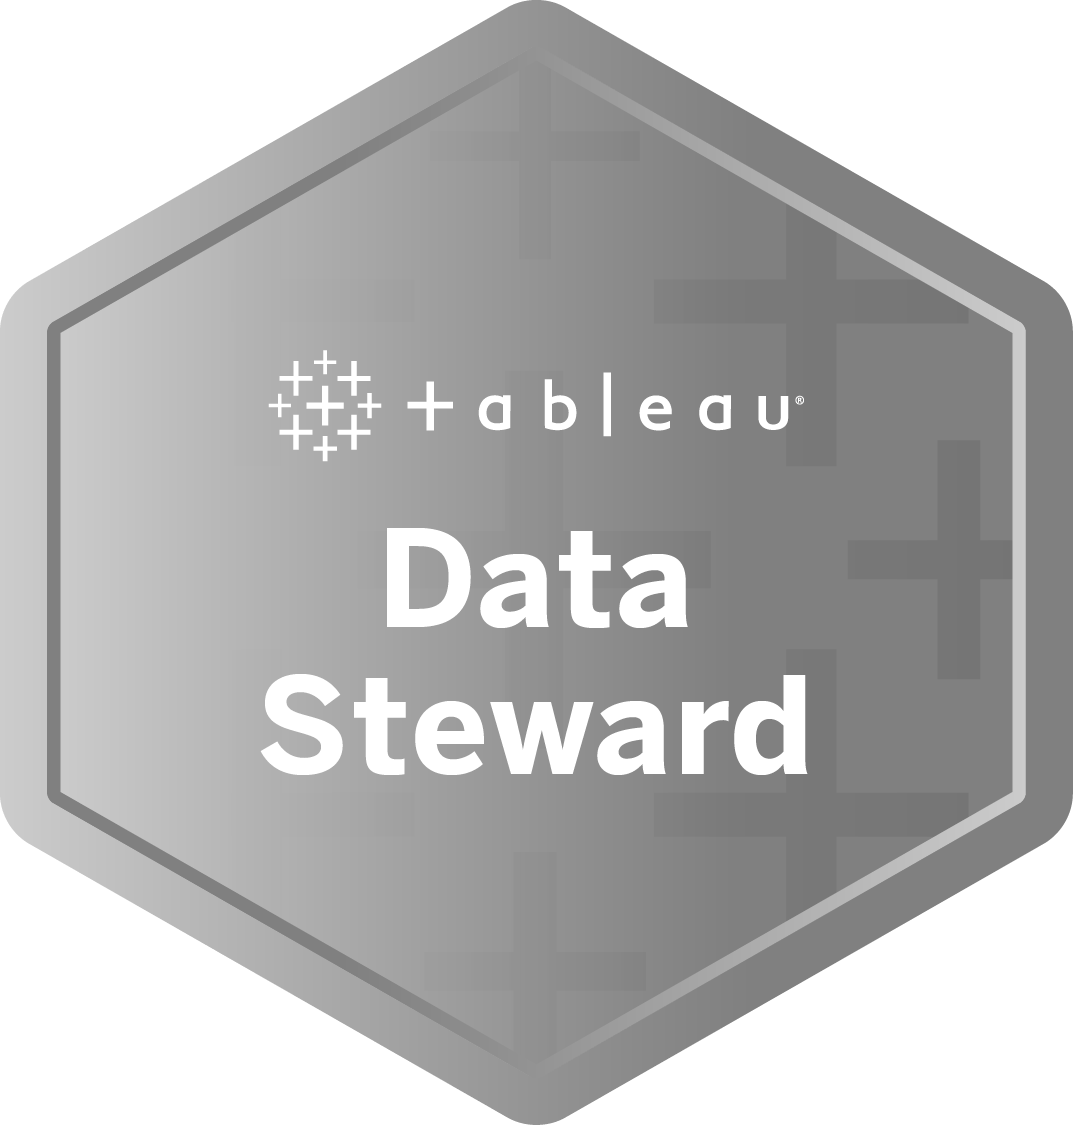 Data Steward badge